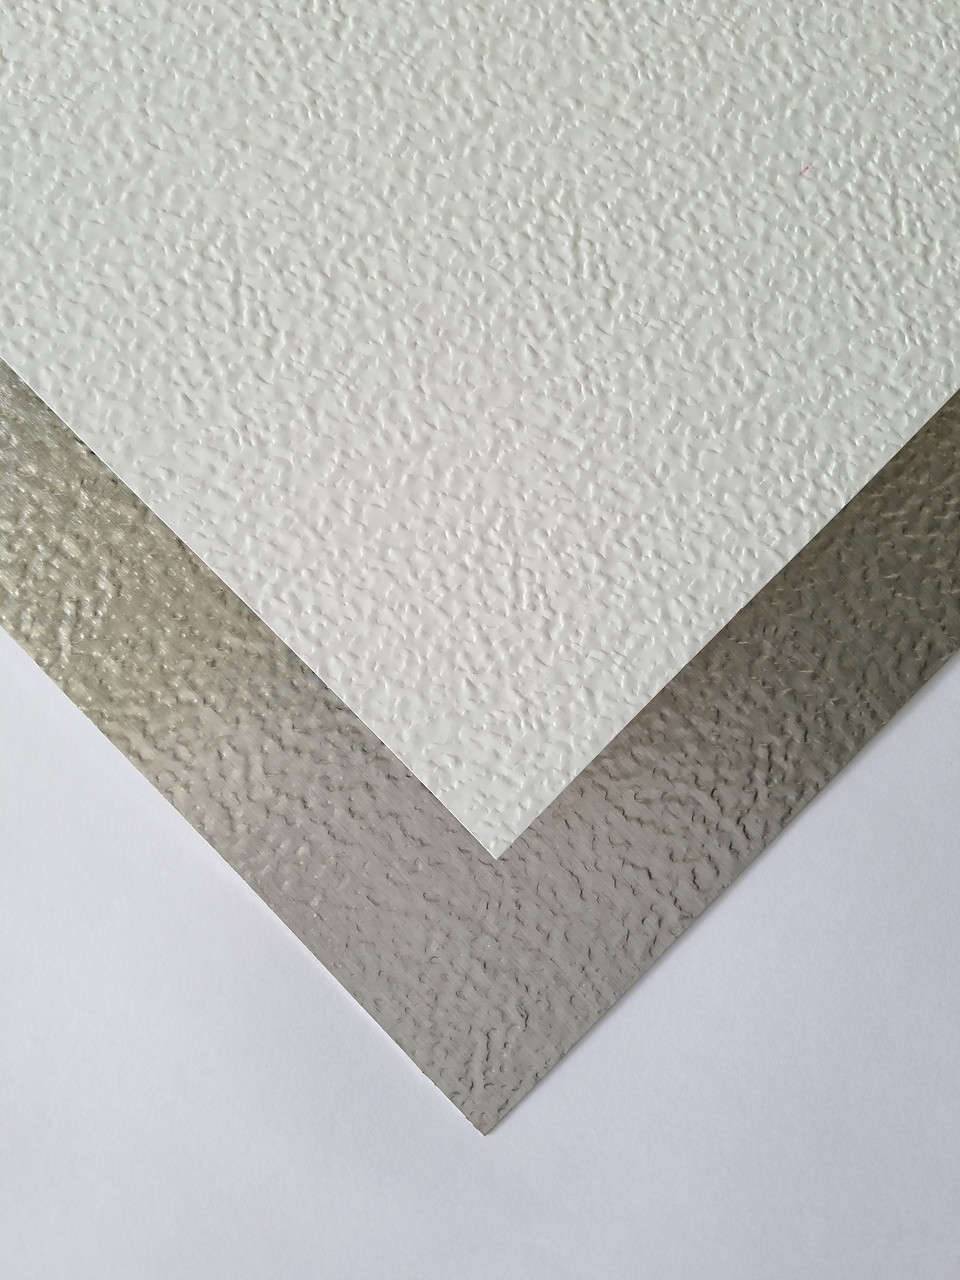 48 X 96 Stucco Embossed Aluminum Sheet Cutsmetal